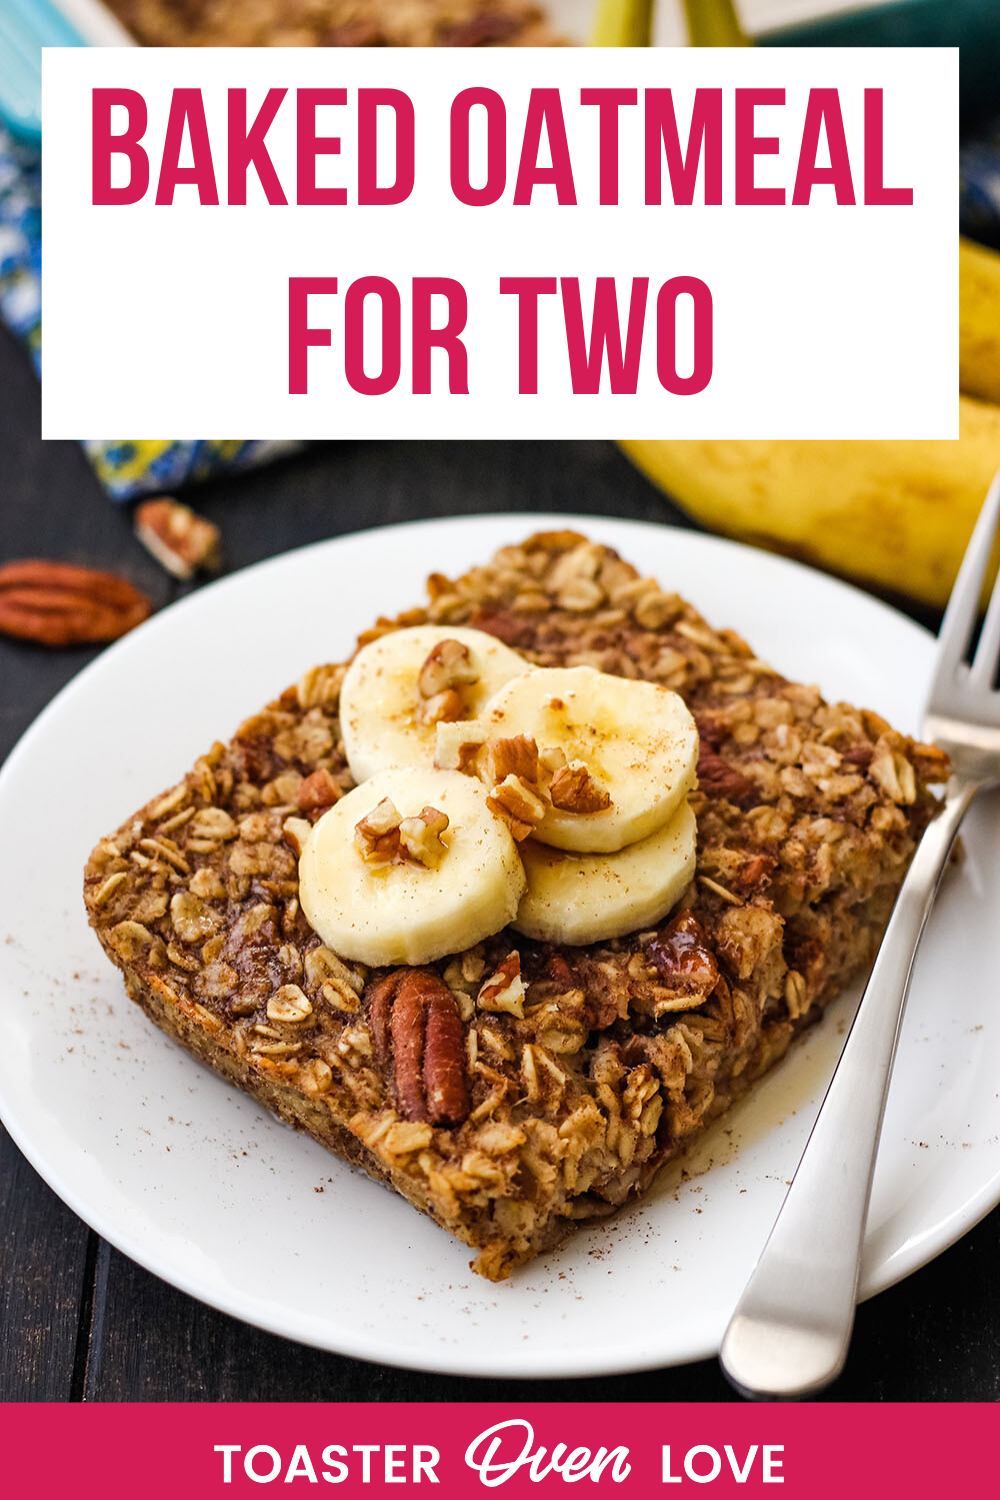 Toaster Oven Baked Oatmeal Easy Breakfast For Two Recipe In 2020 Baked Dishes Baked Oatmeal Banana Baked Oatmeal